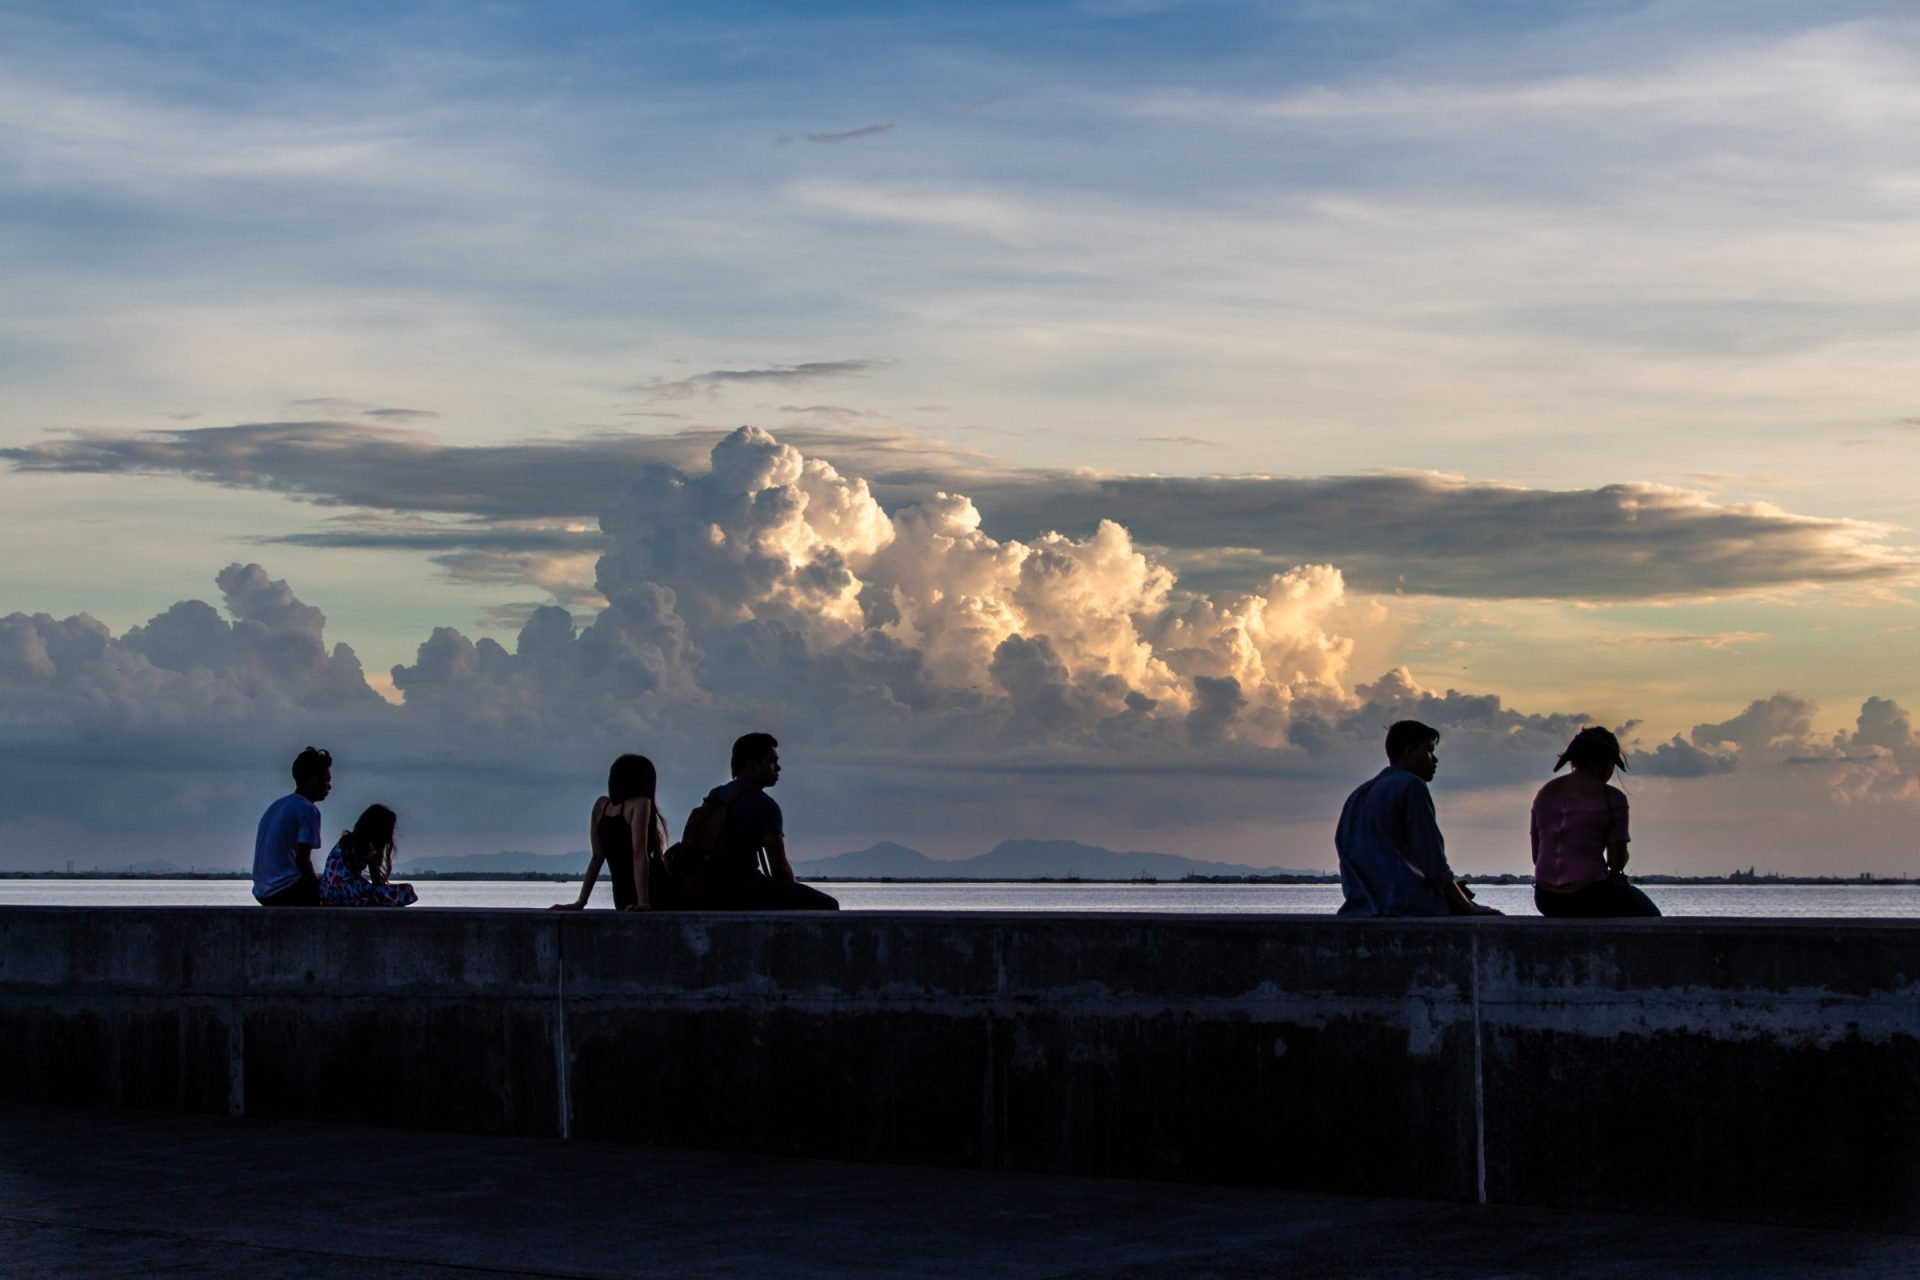 People Sitting On Coastal Ledge During Sunset